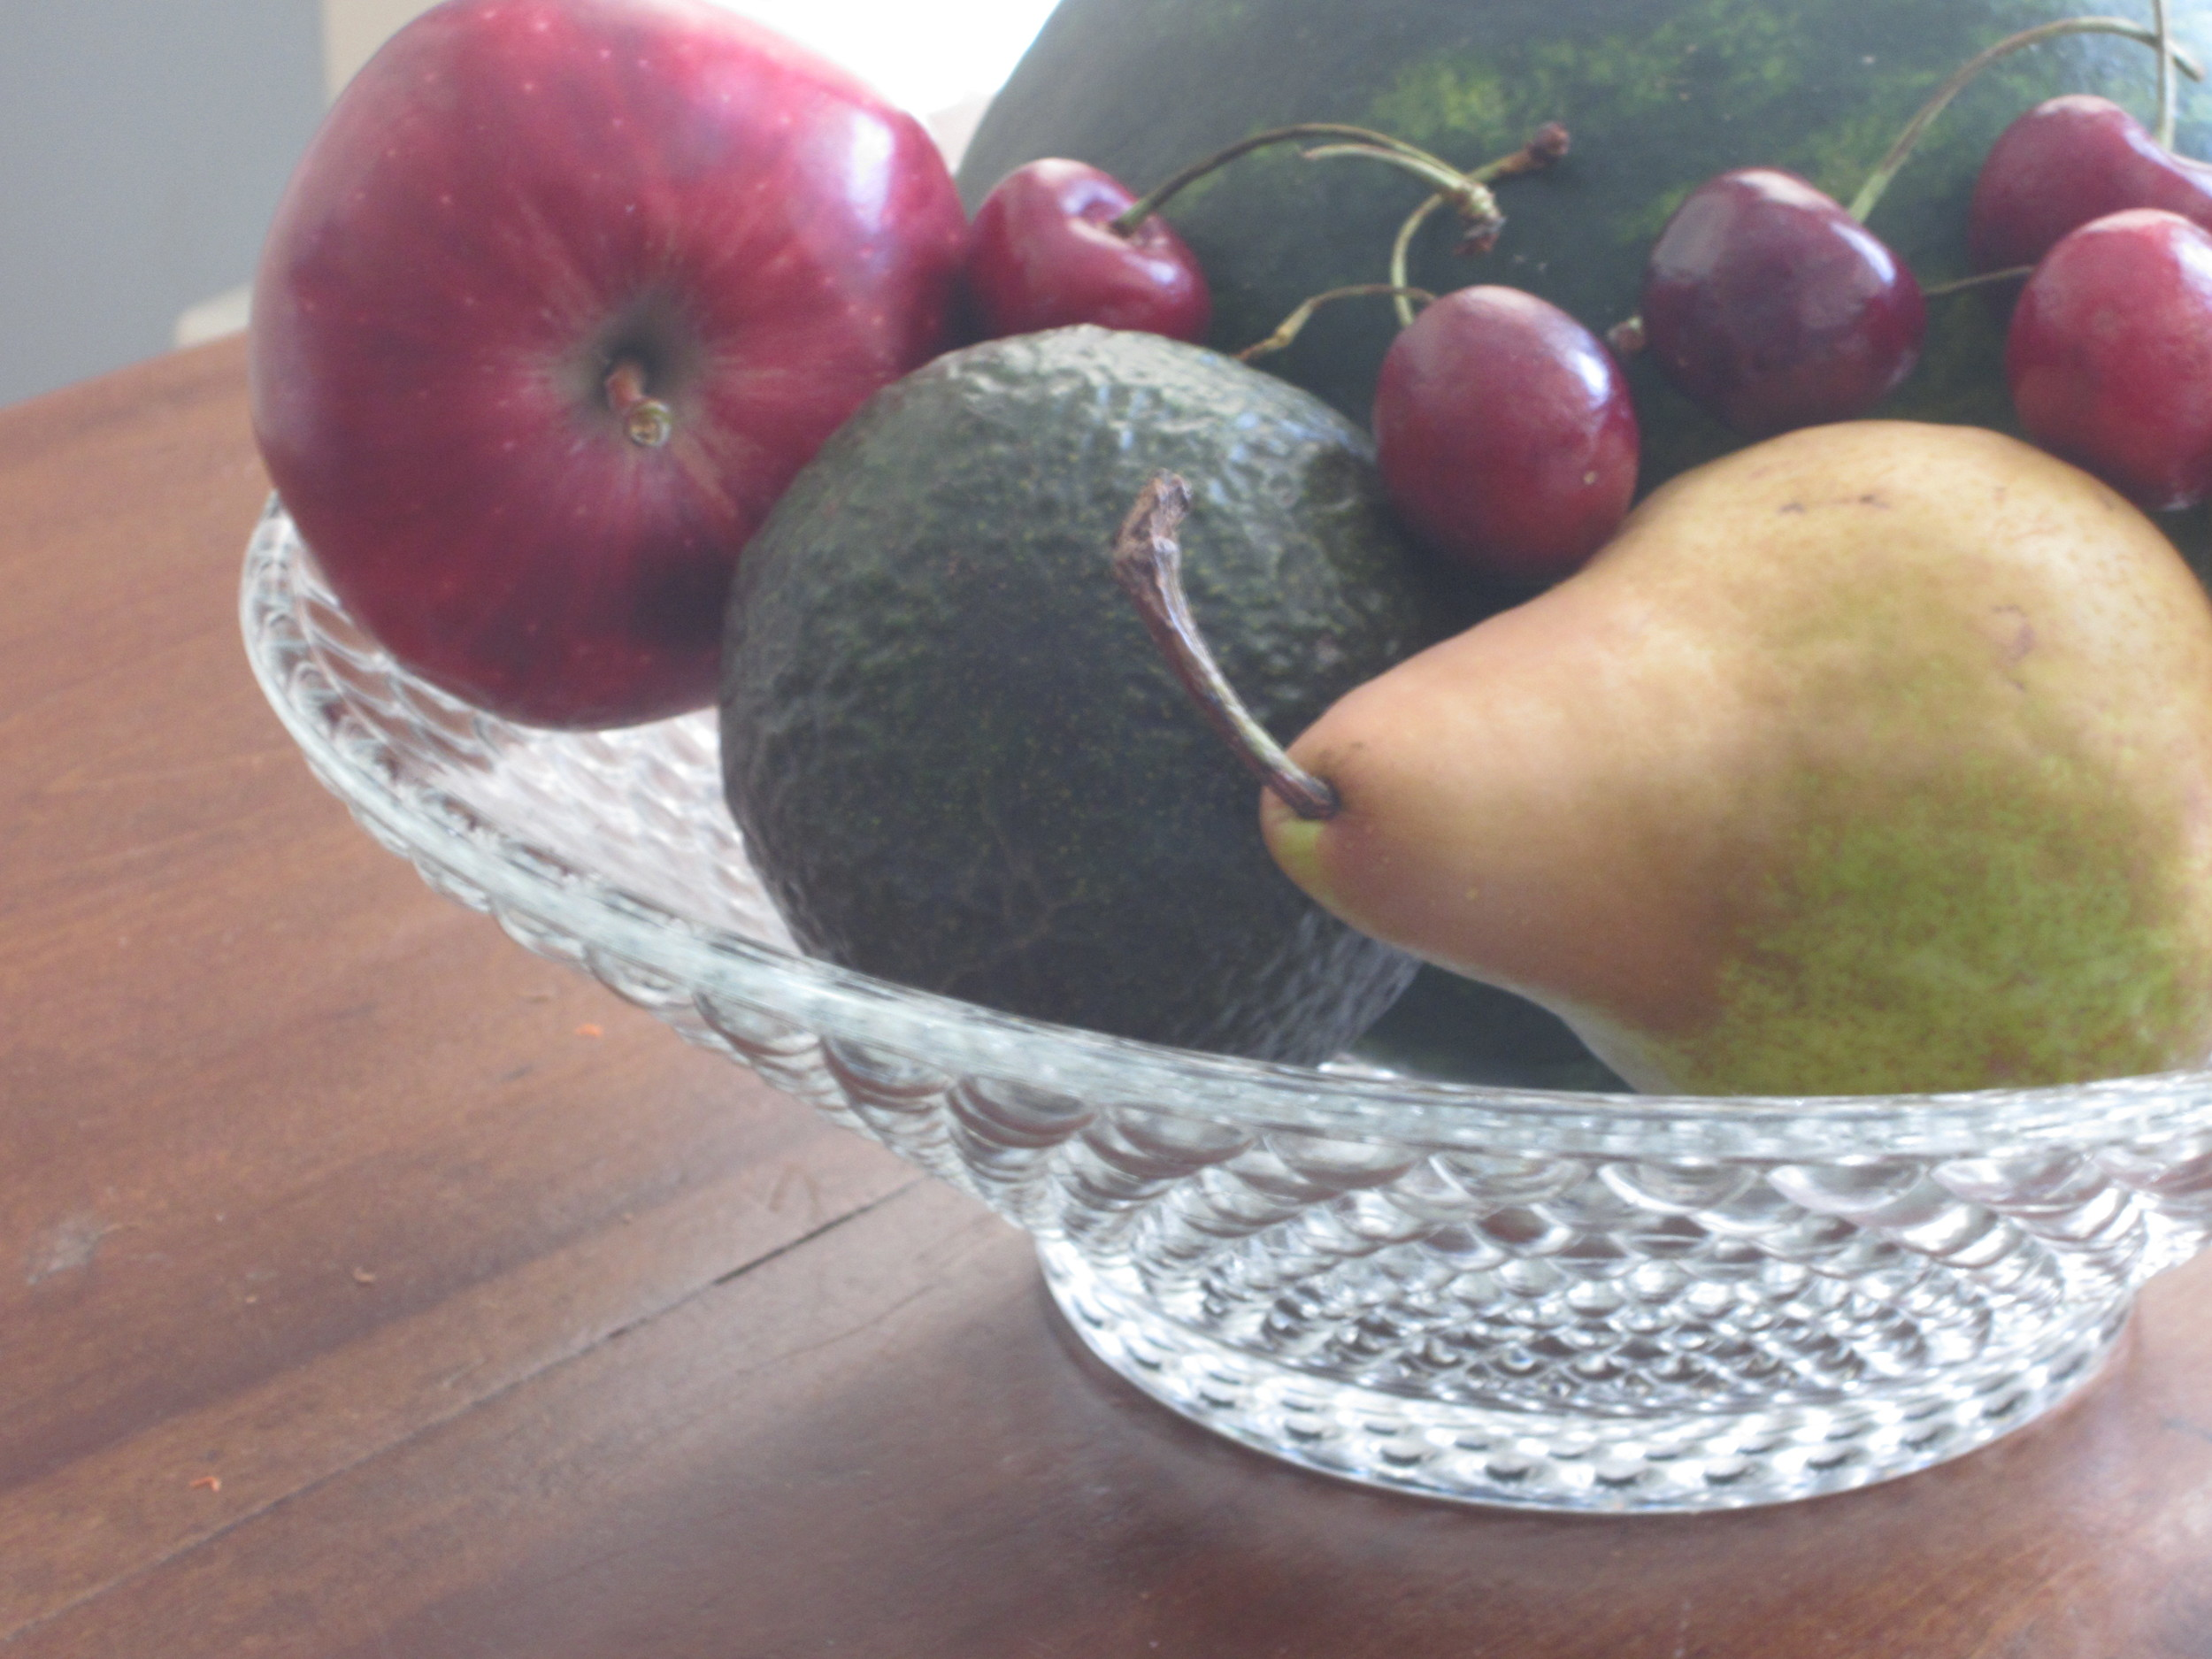 Can adding glucose to these high-fructose fruits make it easier for people with fructose malabsorption to tolerate them?